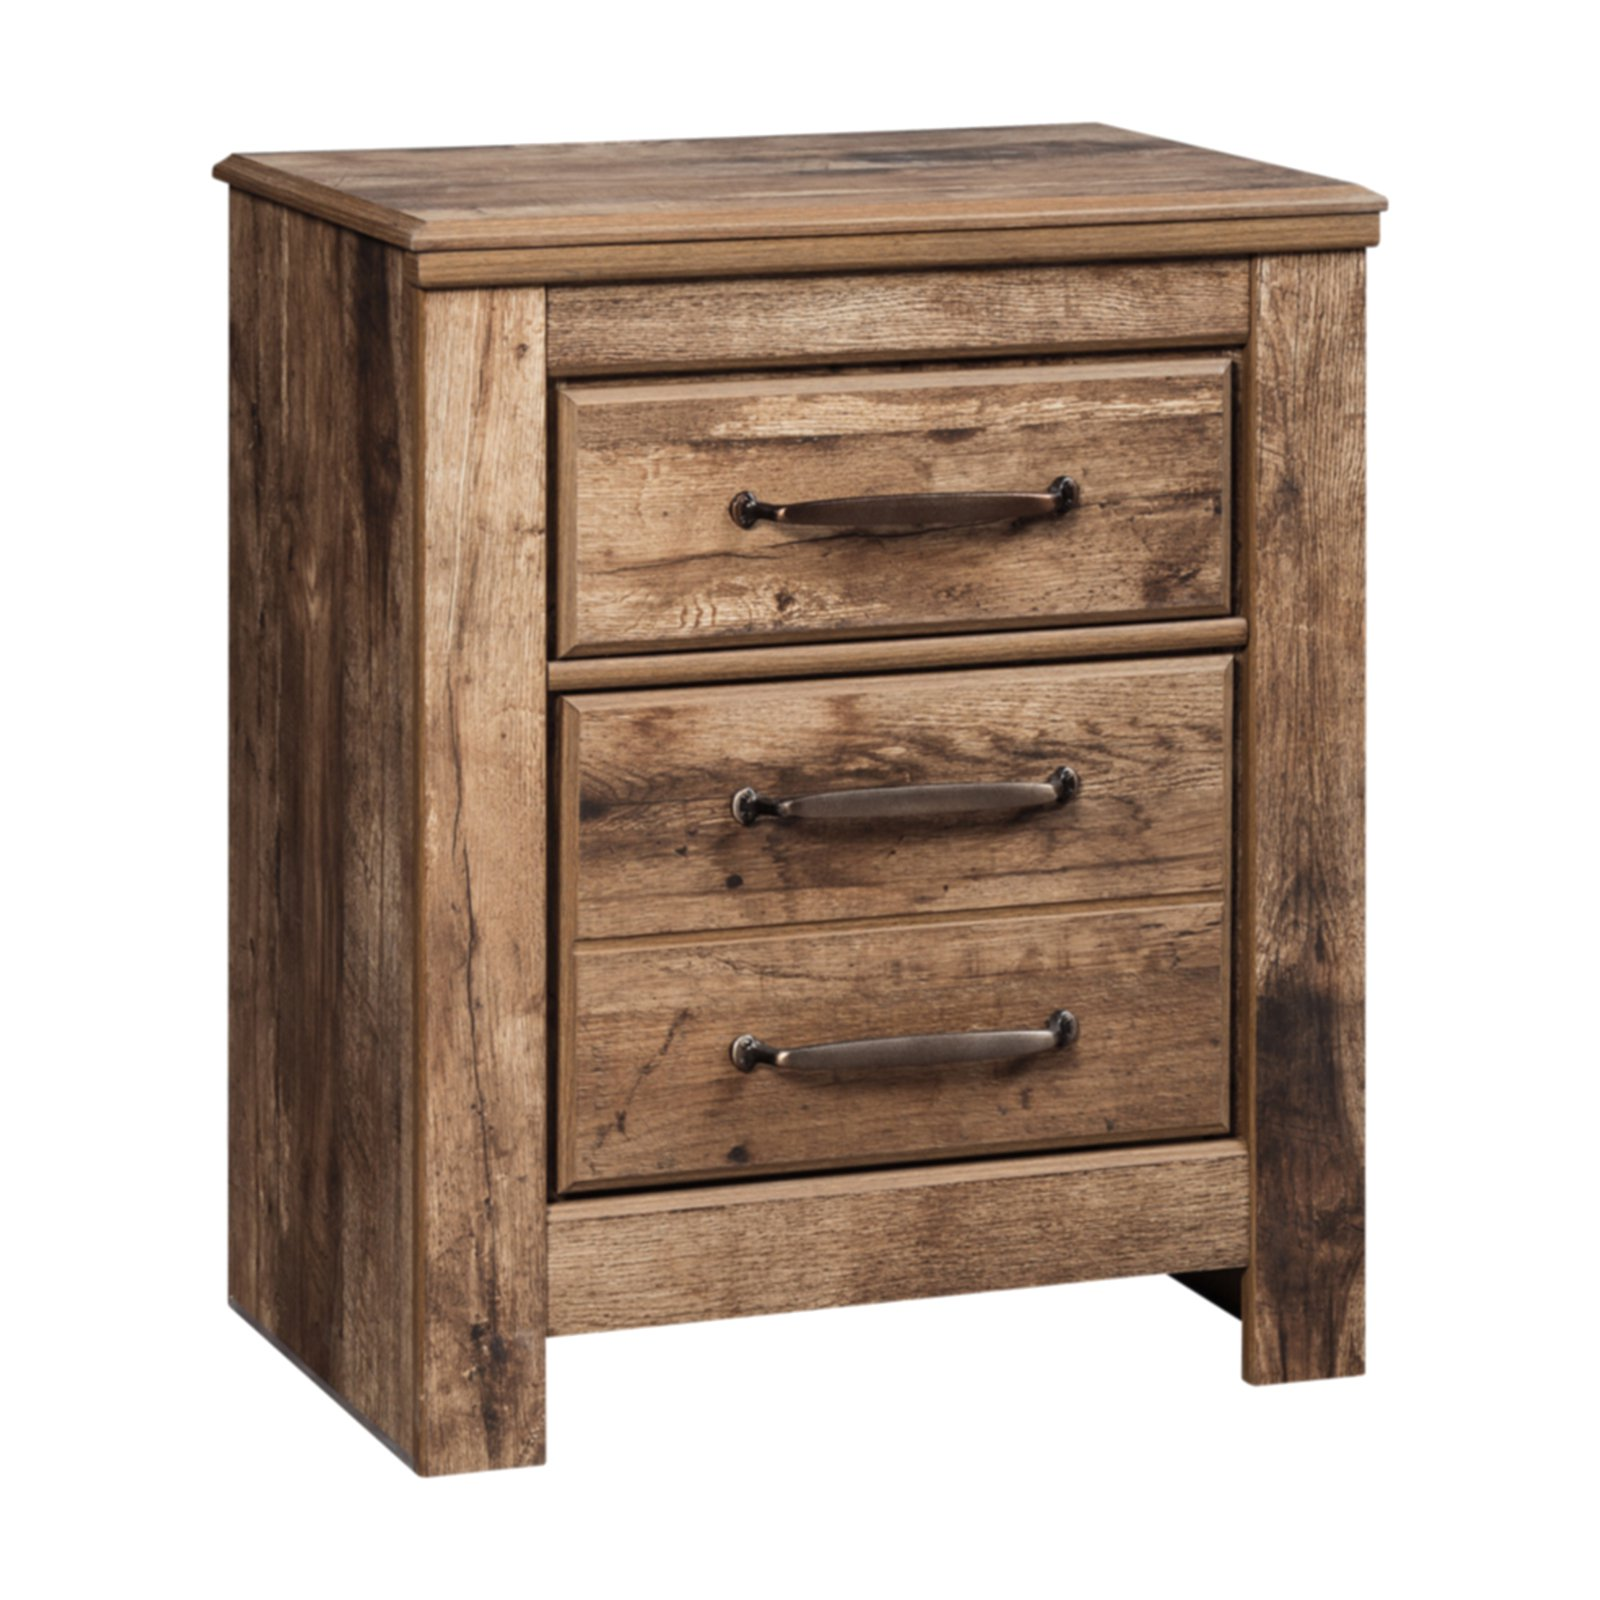 Signature Design by Ashley Blaneville 2 Drawer Nightstand